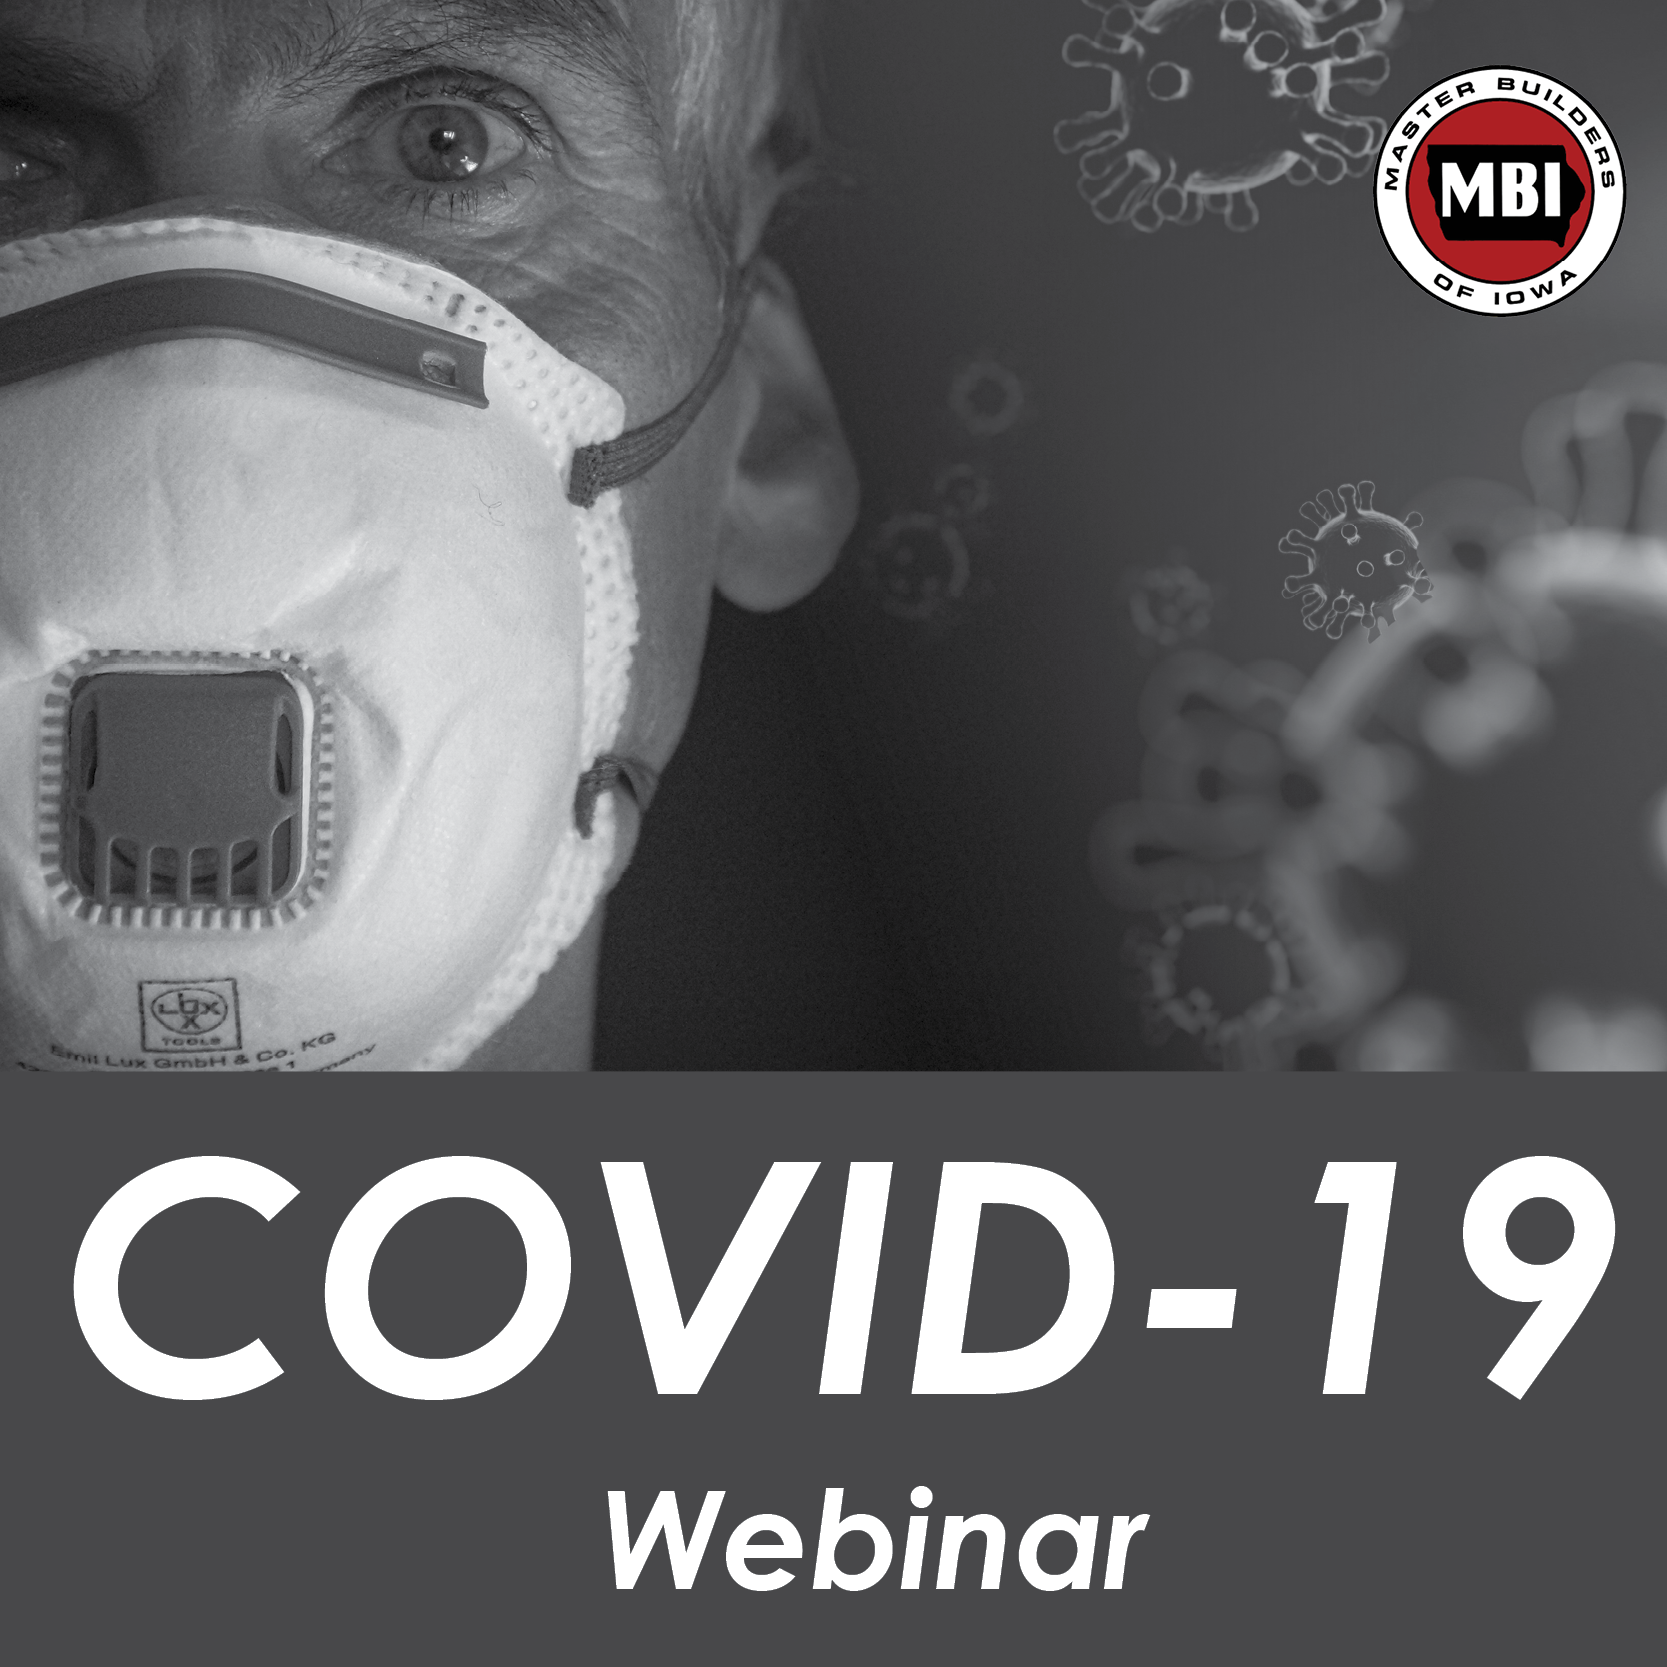 Webinar Recap – COVID-19: Impacts on Construction, Safety Practices, and a Federal Update